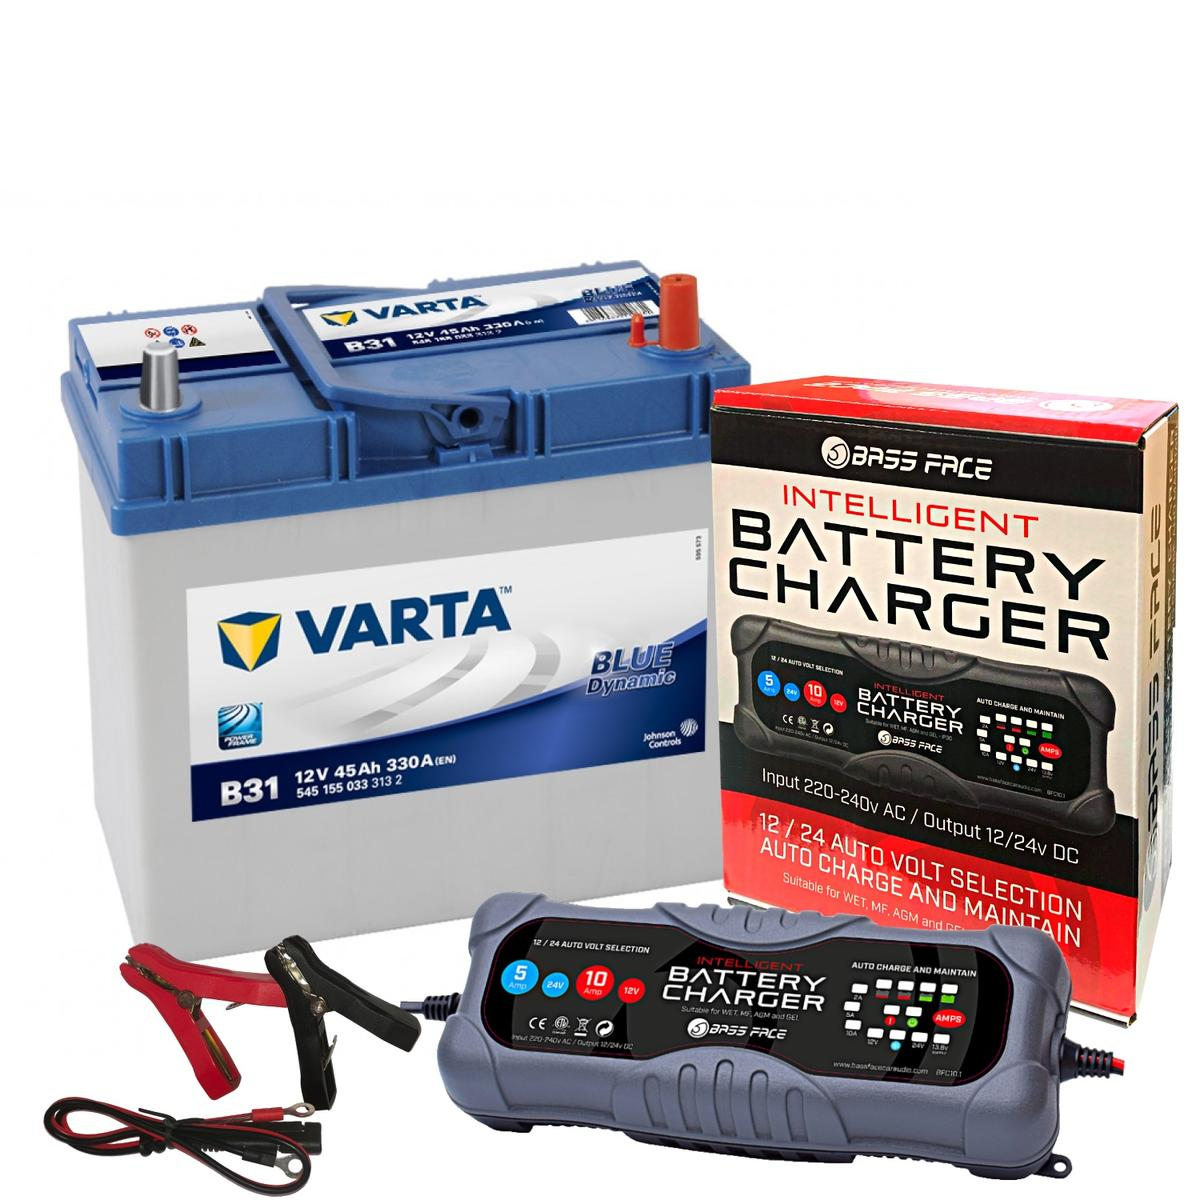 Varta B32 Toyota Car Battery 12v 4 Year 044 / 053 45Ah 330CCA W/ 10 Amp Charger